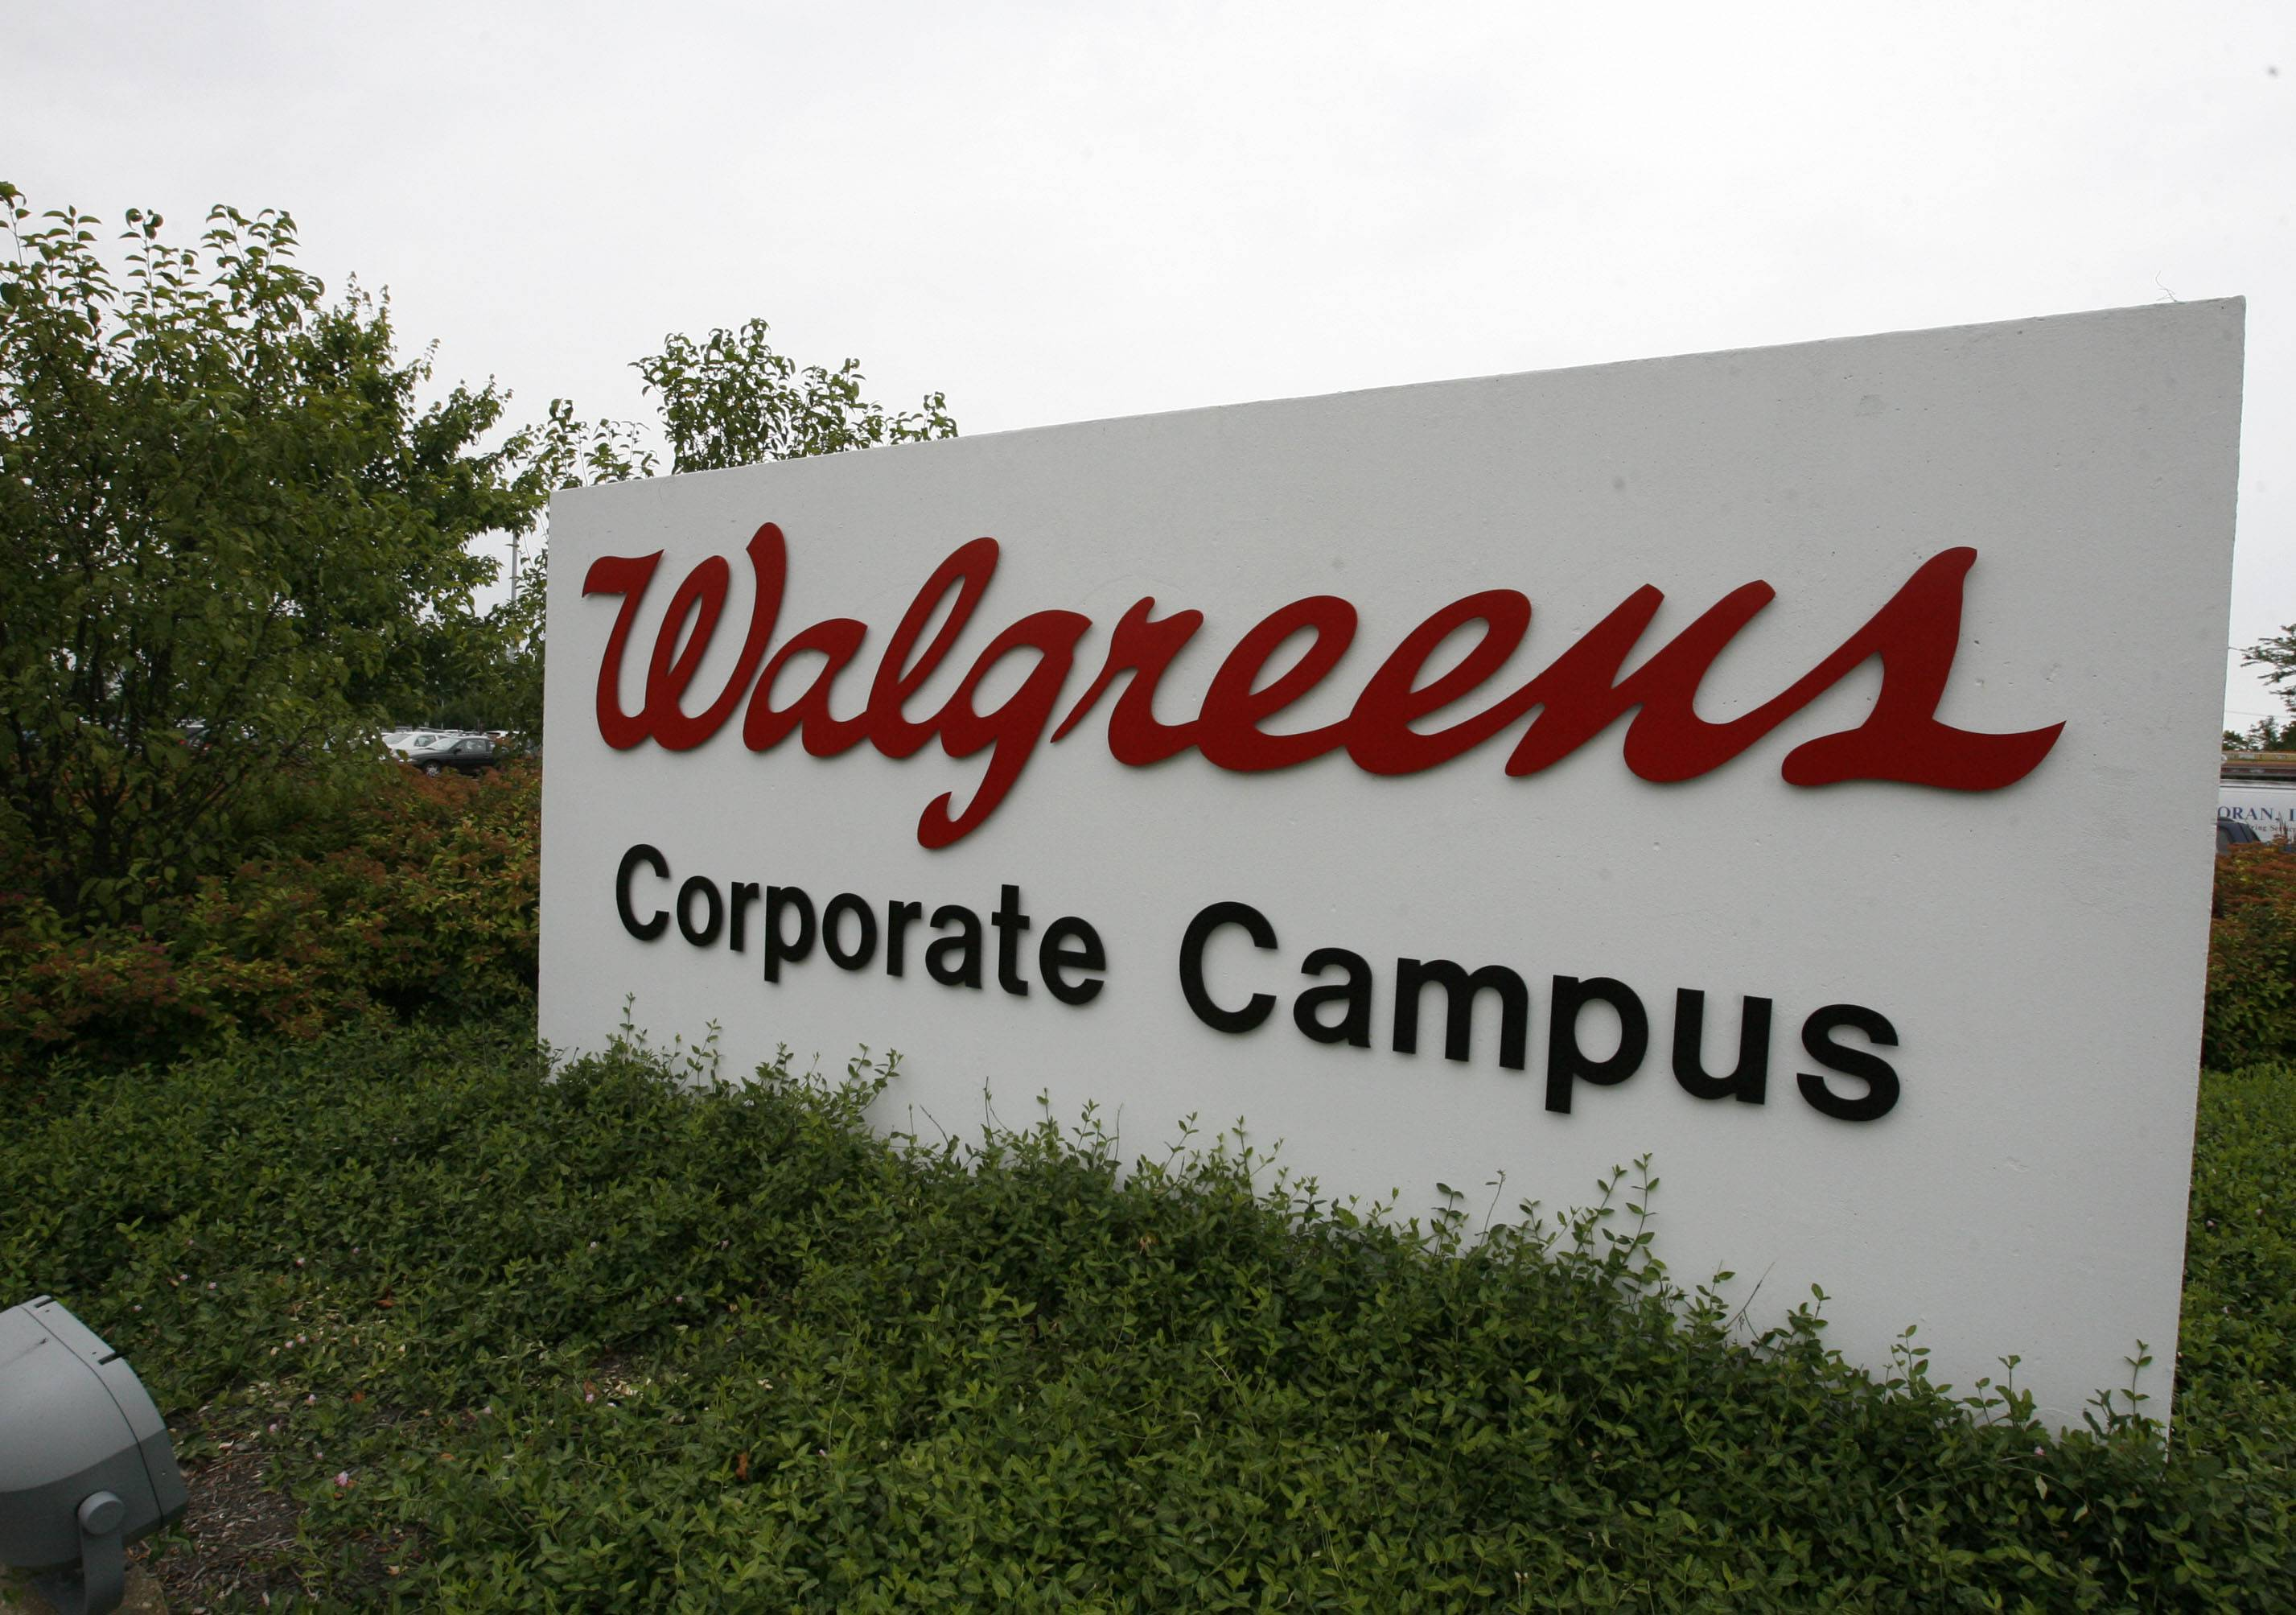 Deerfield-based Walgreens Boots Alliance Inc. agreed to pay $269.2 million to settle U.S. claims that the drugstore chain defrauded a federally funded health care program.